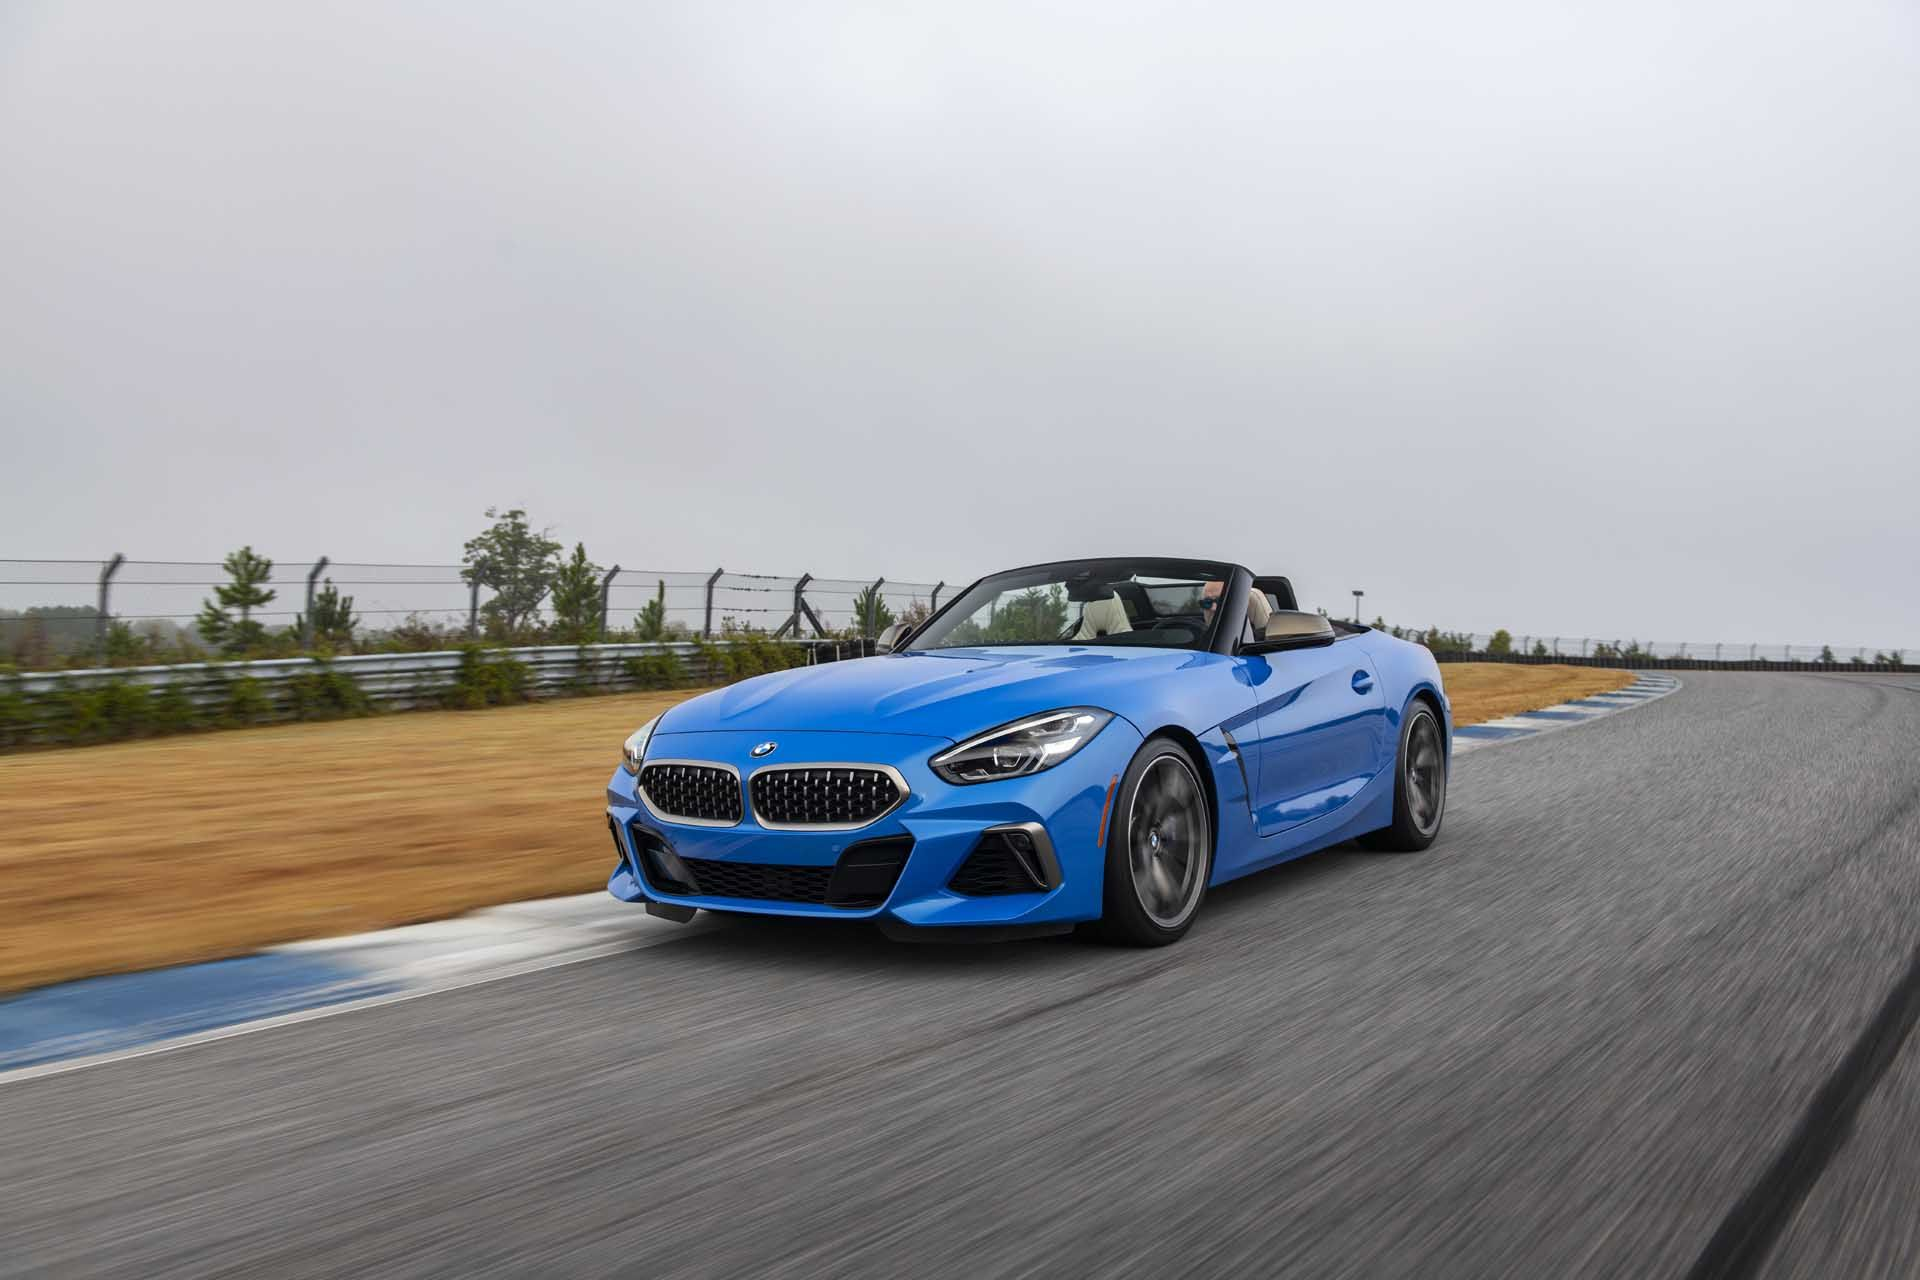 First Drive Review 2020 Bmw Z4 M40i Keeps The Sunday Drive Alive In 2020 Bmw Z4 Bmw First Drive